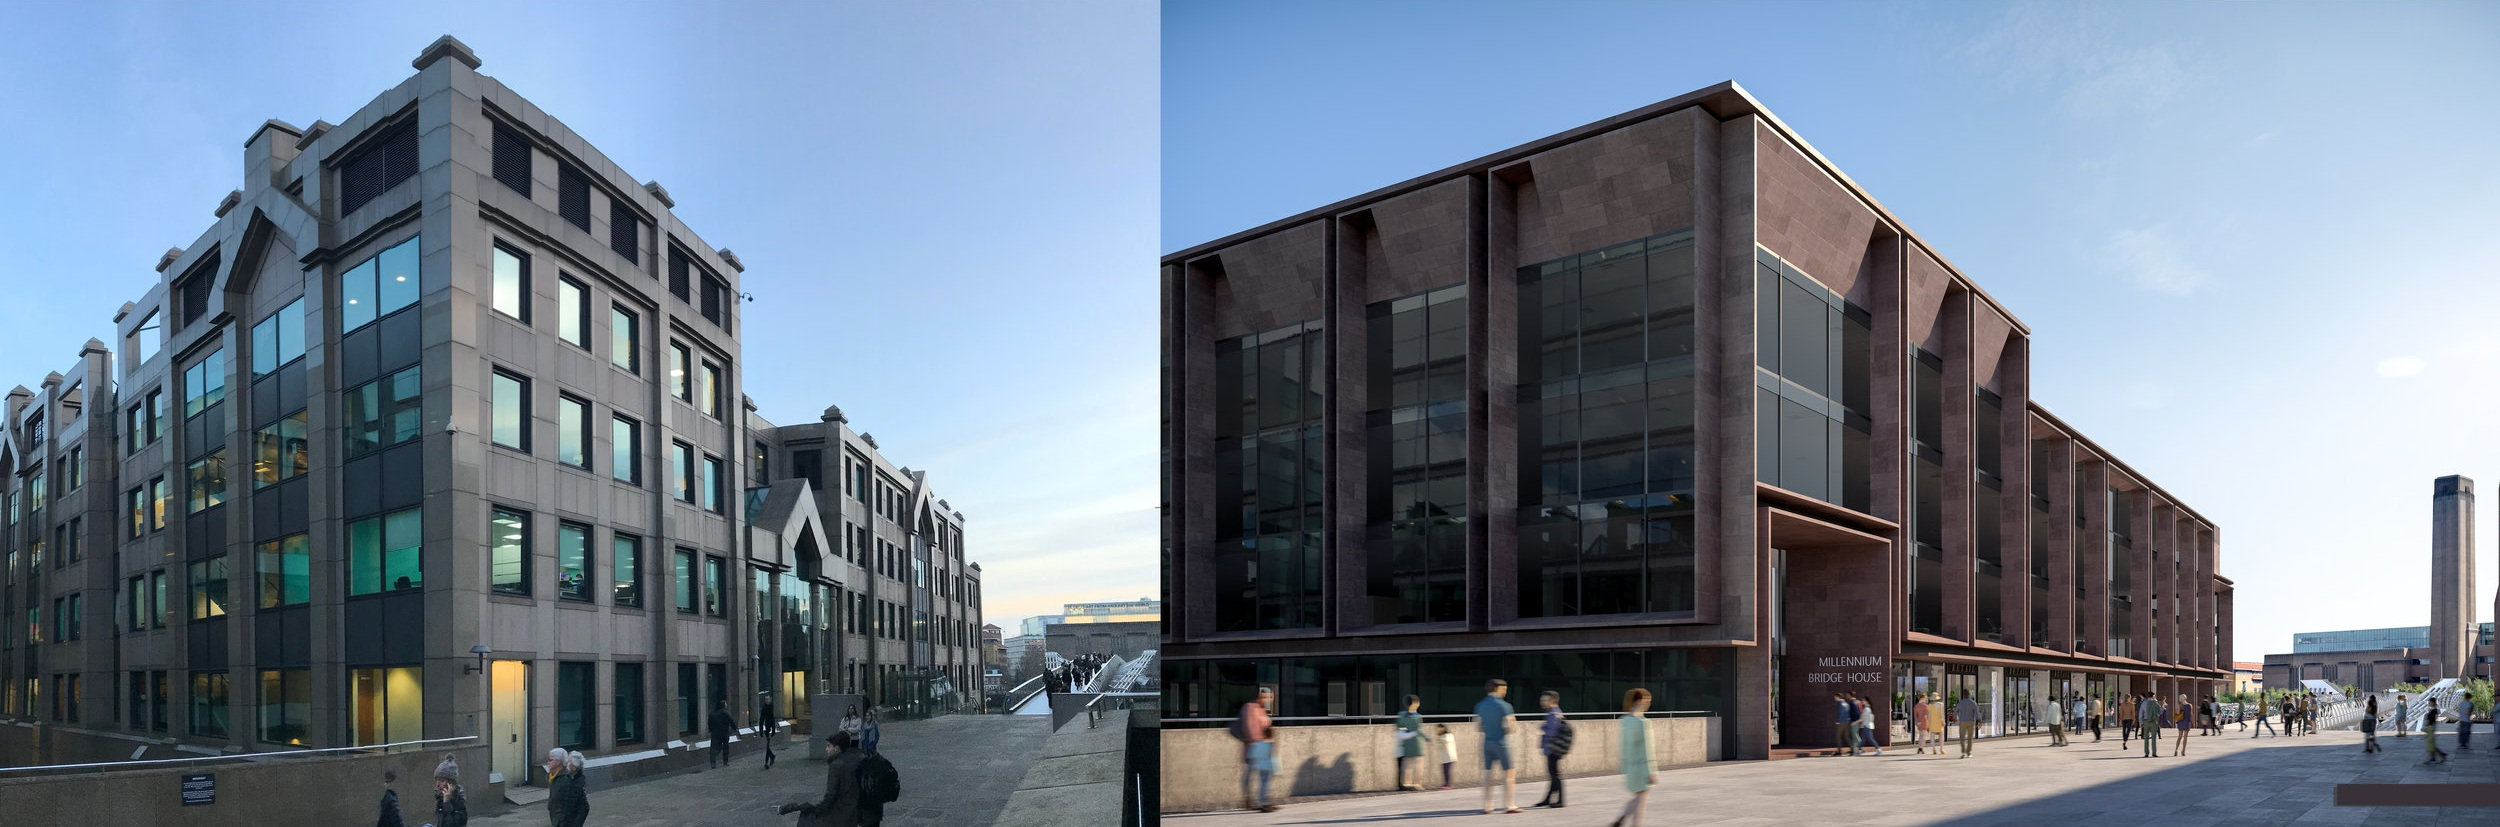 Reconfigured Entrance - View toward the Tate Modern